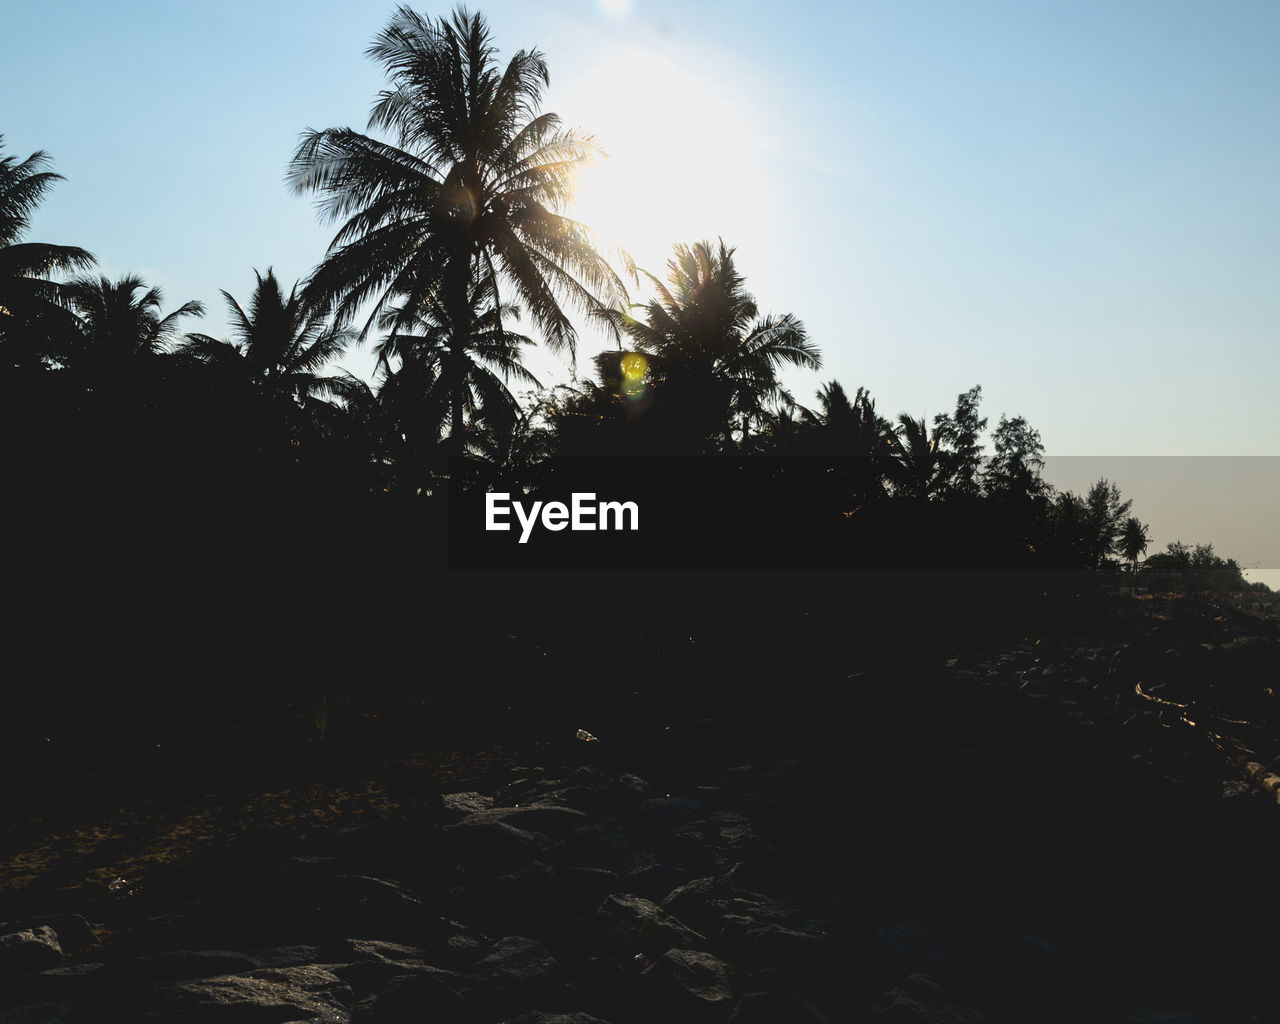 sky, tree, plant, palm tree, tropical climate, tranquility, tranquil scene, beauty in nature, scenics - nature, nature, sunlight, silhouette, no people, land, non-urban scene, growth, clear sky, sunset, outdoors, environment, coconut palm tree